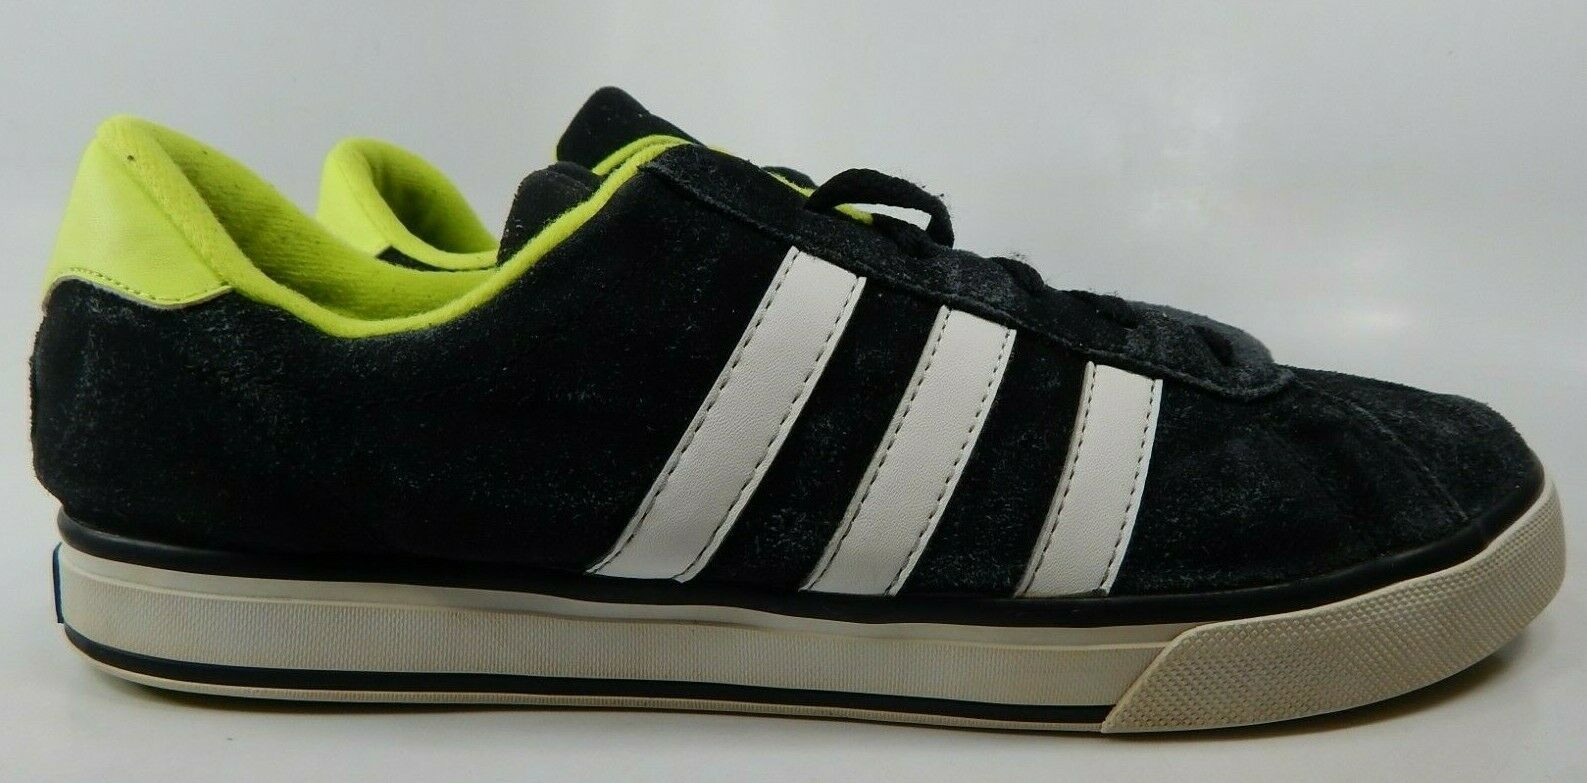 Adidas Neo SE Daily Vulc Size 12 M (D) EU 46 2/3 Men's Sneakers Shoes U44858